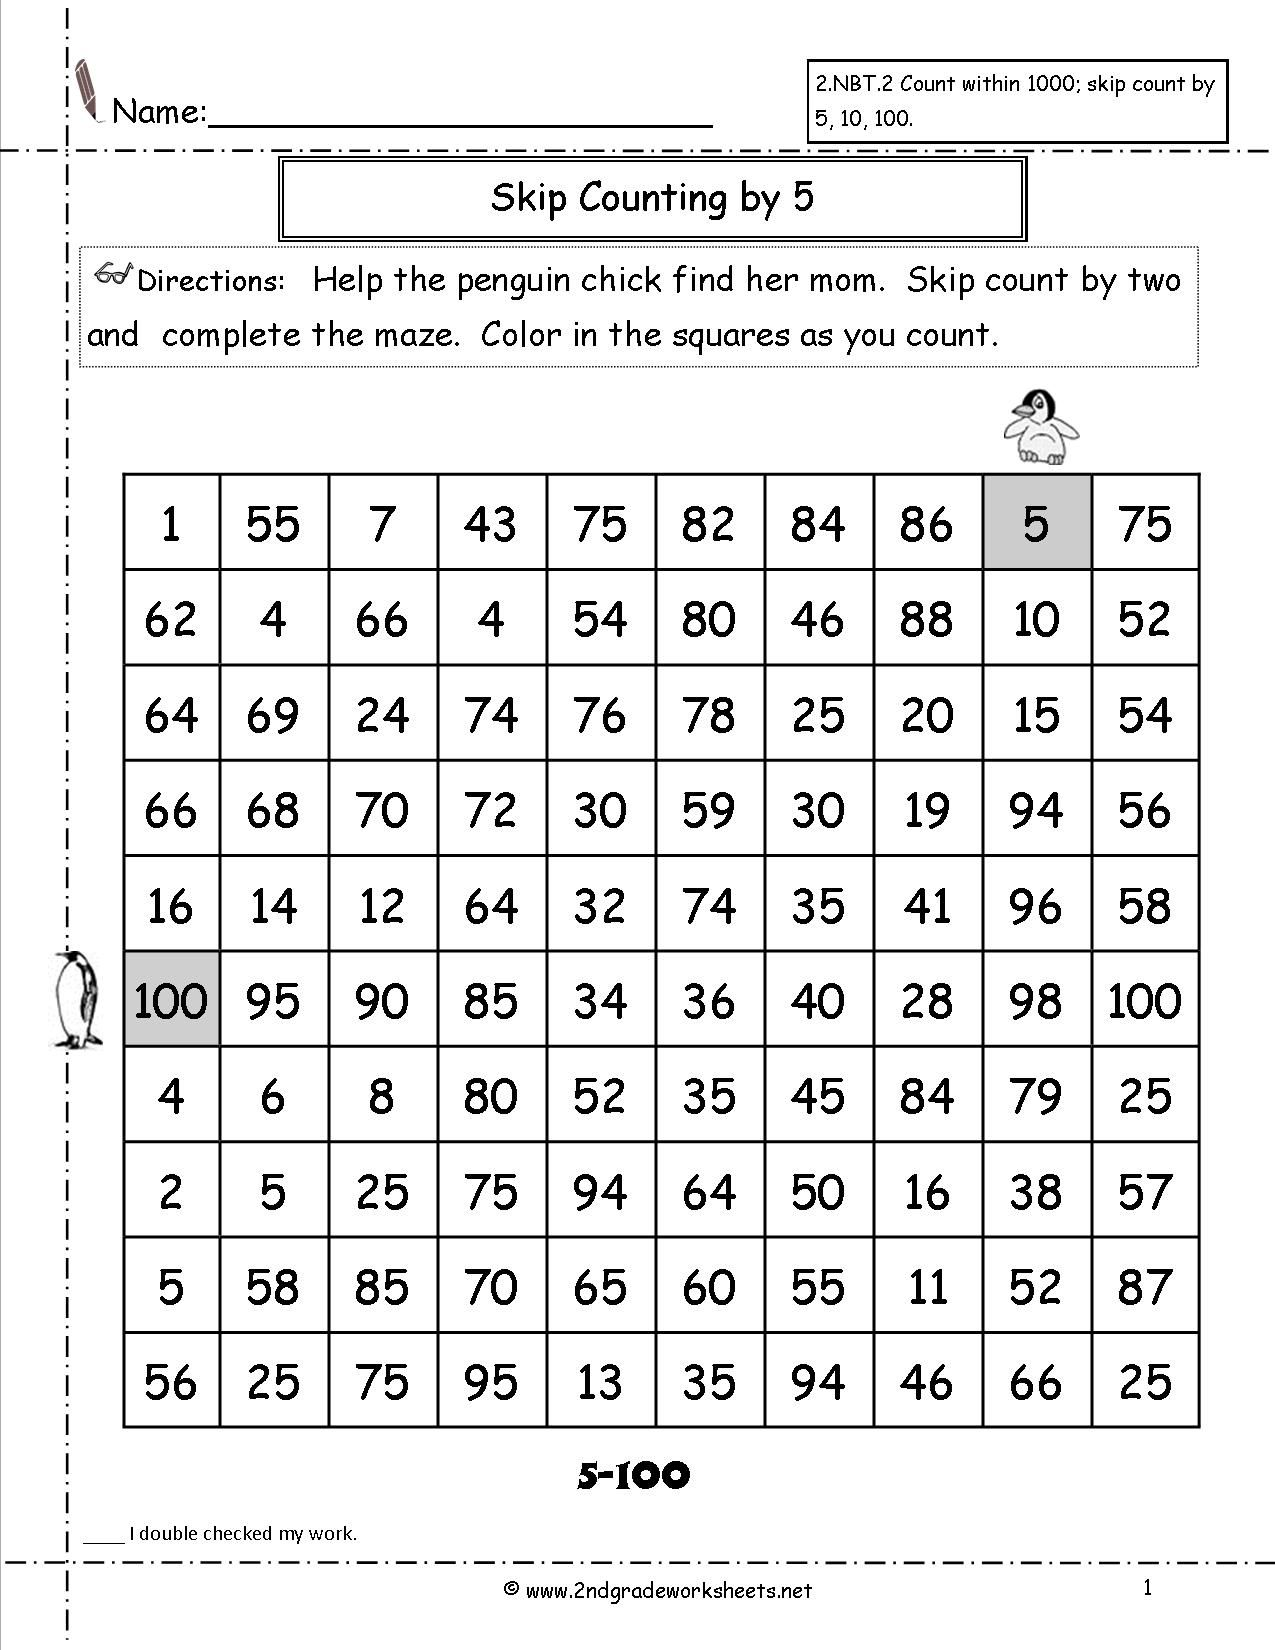 skip counting by 2 and 5 worksheets google search math pinterest skip counting. Black Bedroom Furniture Sets. Home Design Ideas